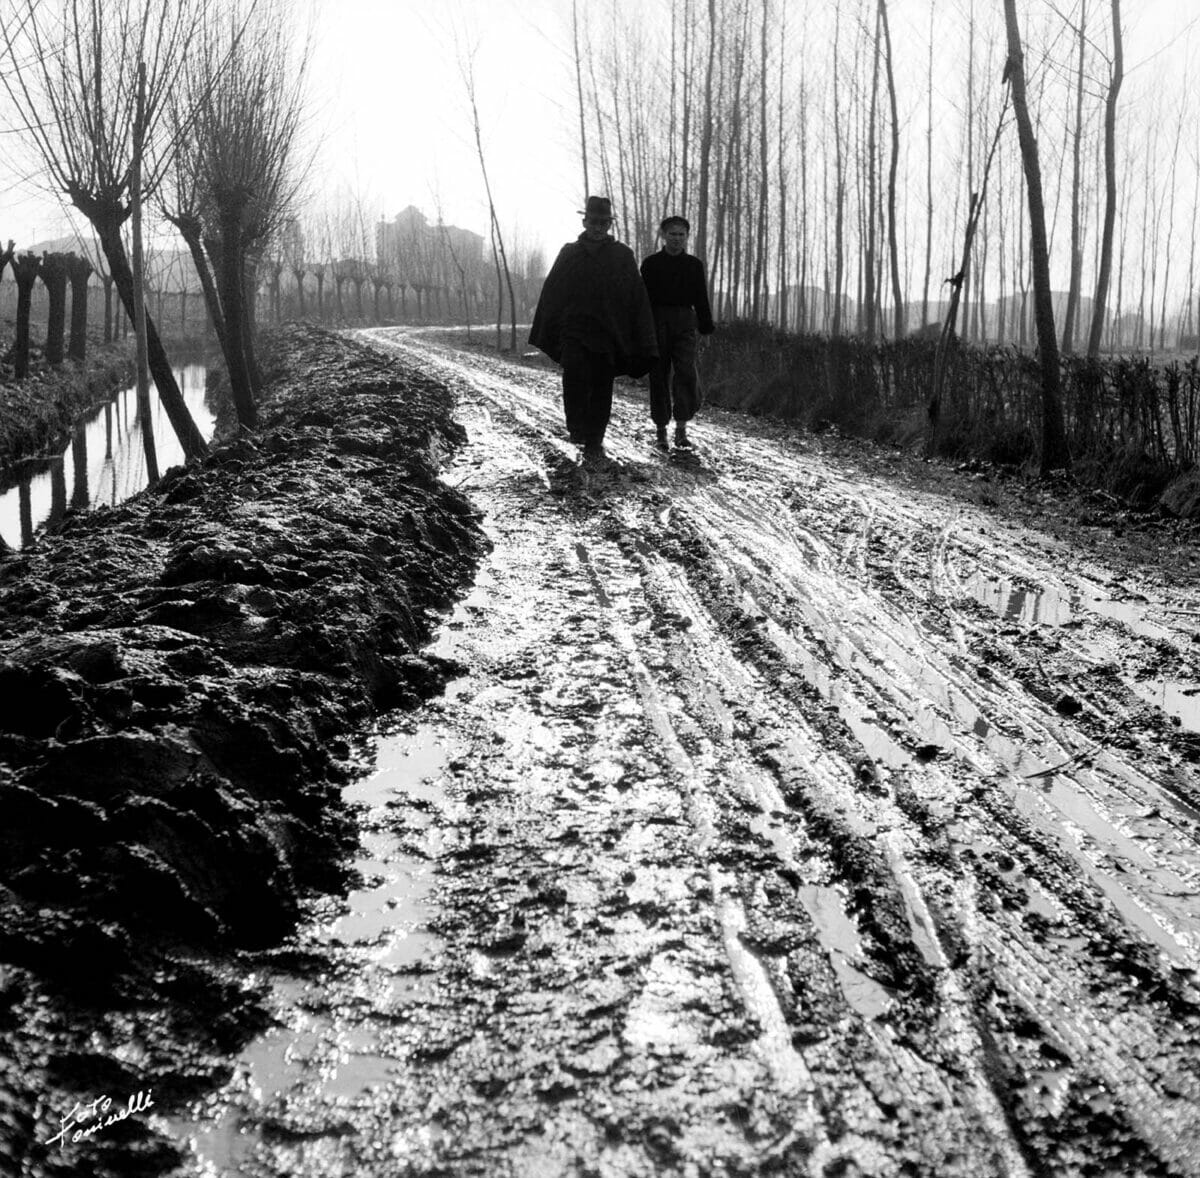 people walking on a muddy road